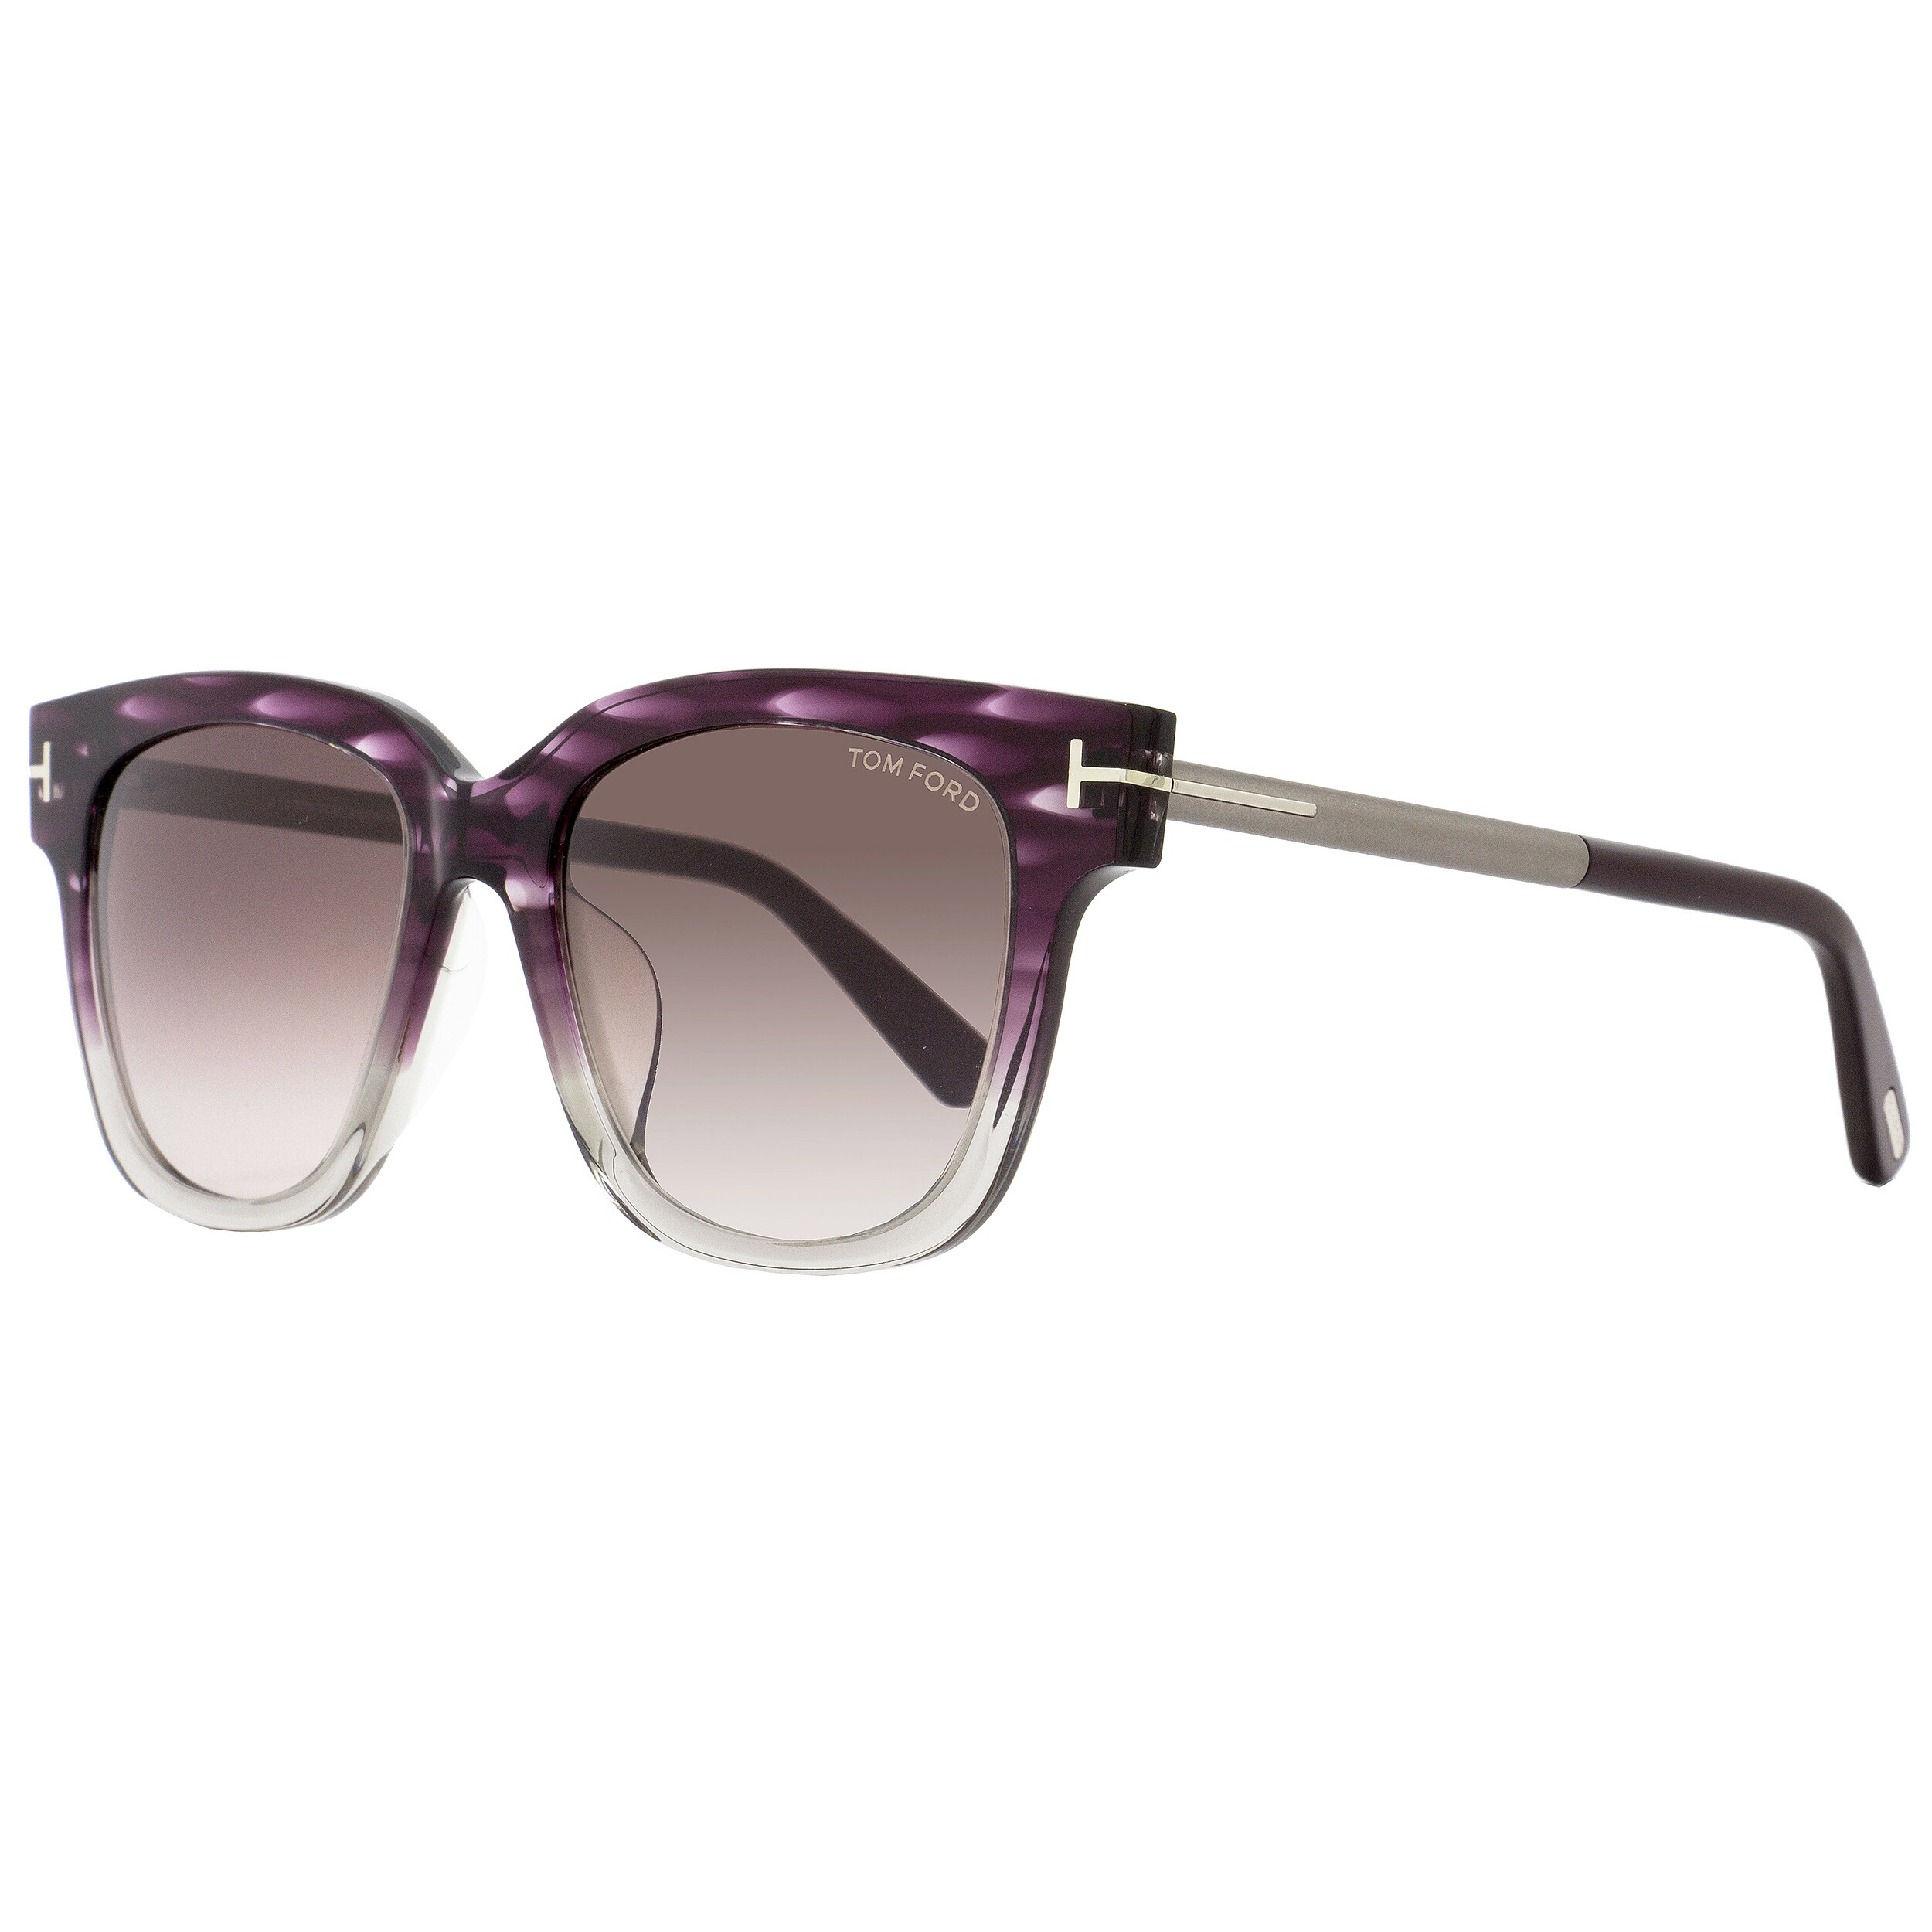 587e3b55e3ae Shop Tom Ford TF436F Tracy 83T Women s Violet Melange Ruthenium Wine Red  Gradient Lens Sunglasses - Free Shipping Today - Overstock - 18153232